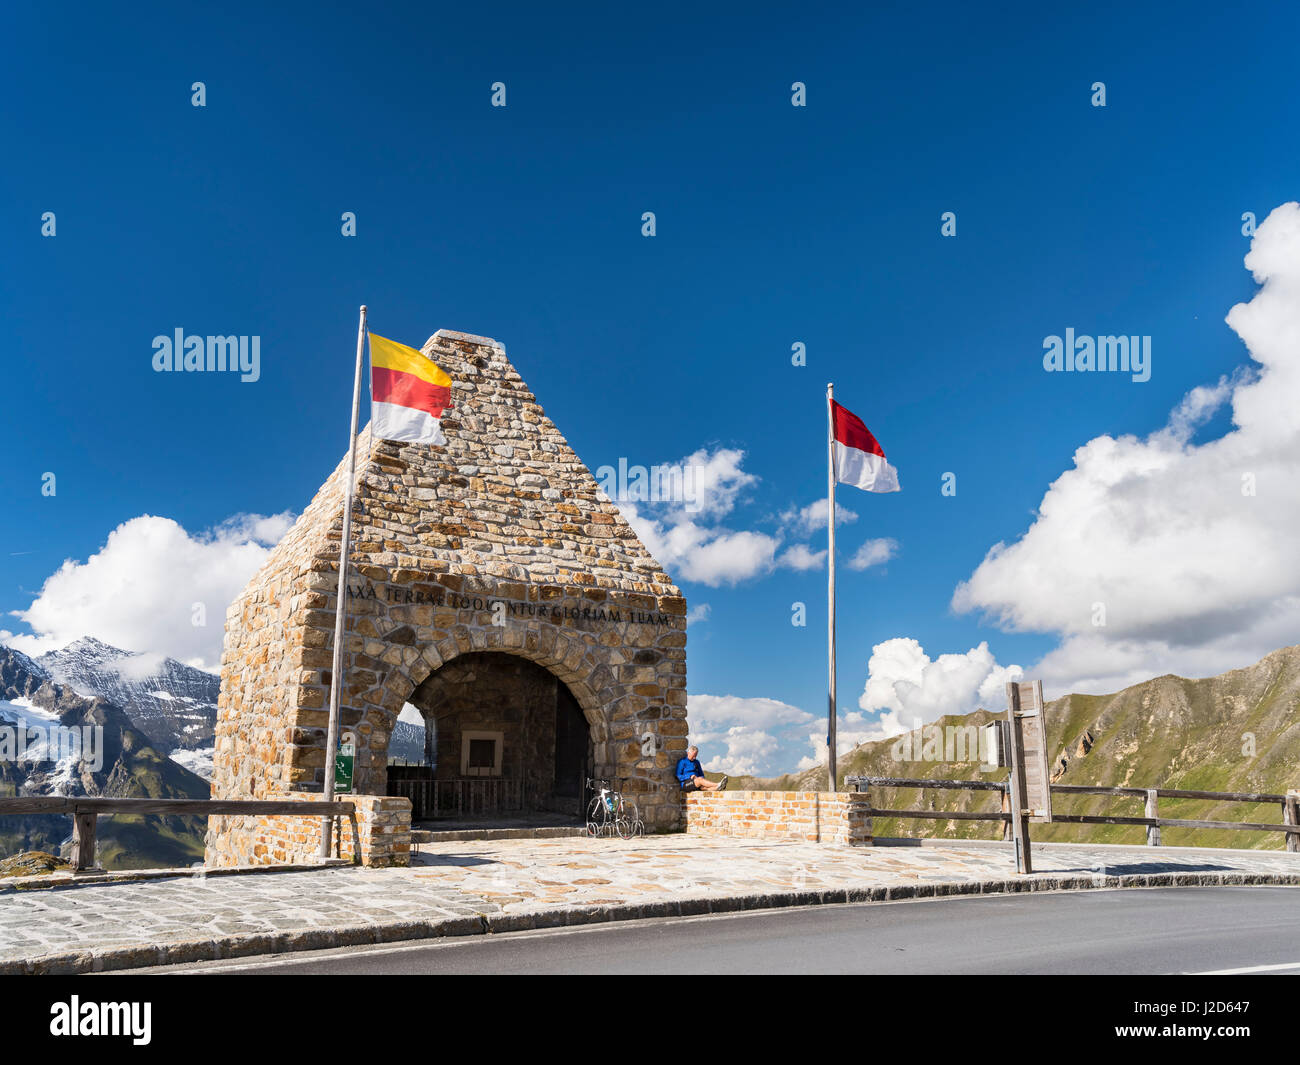 Fuschertoerl with chapel commemorating the casualties of the construction phase of the road. Austria, September - Stock Image